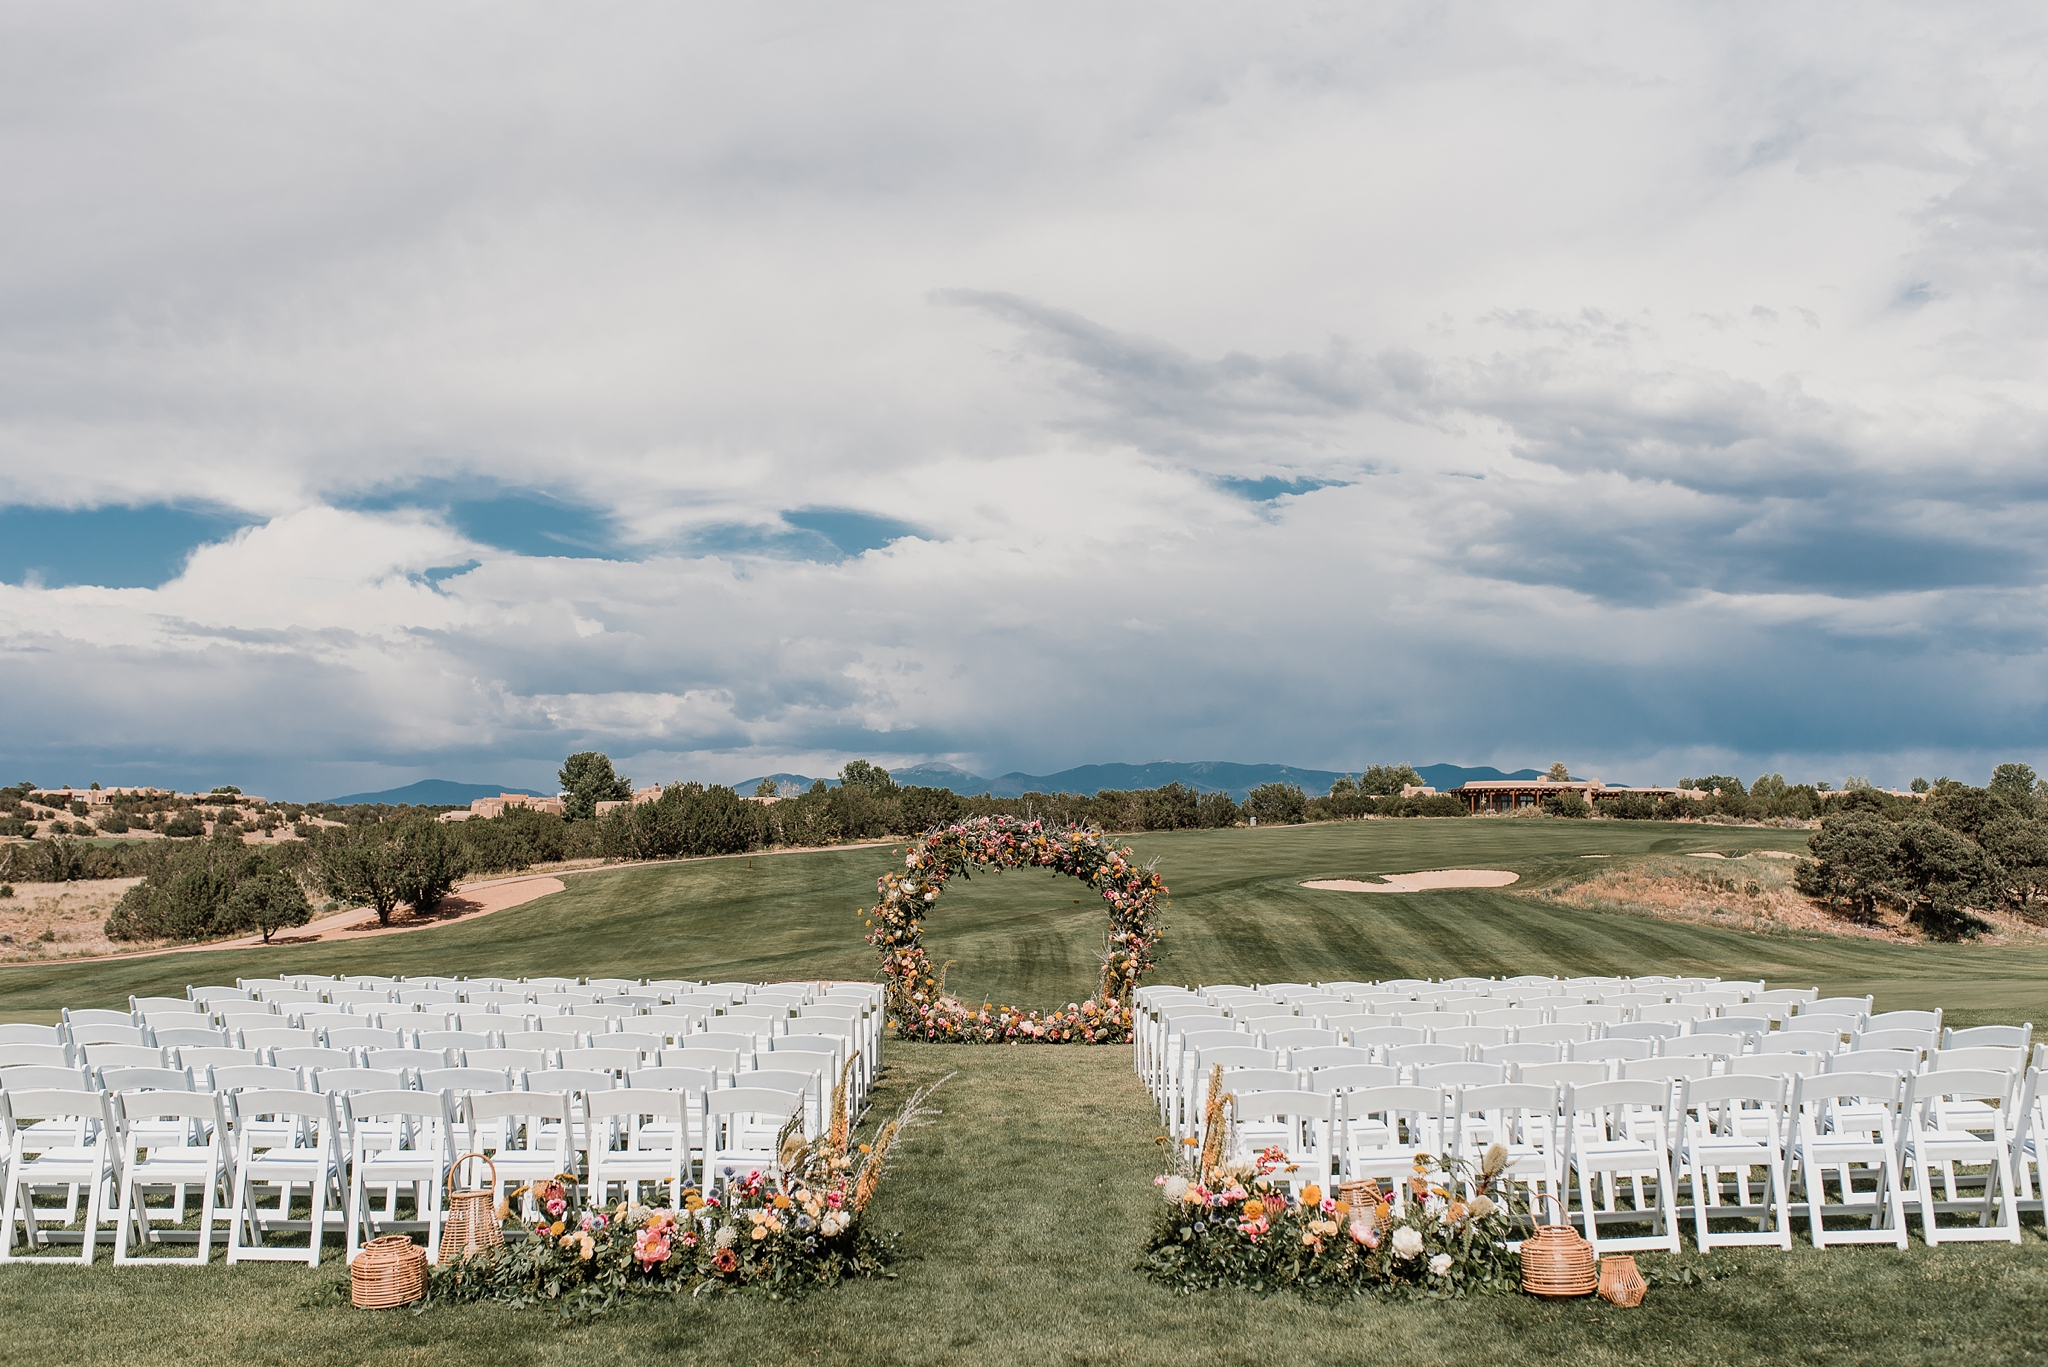 Alicia+lucia+photography+-+albuquerque+wedding+photographer+-+santa+fe+wedding+photography+-+new+mexico+wedding+photographer+-+new+mexico+wedding+-+las+campanas+wedding+-+santa+fe+wedding+-+maximalist+wedding+-+destination+wedding_0044.jpg